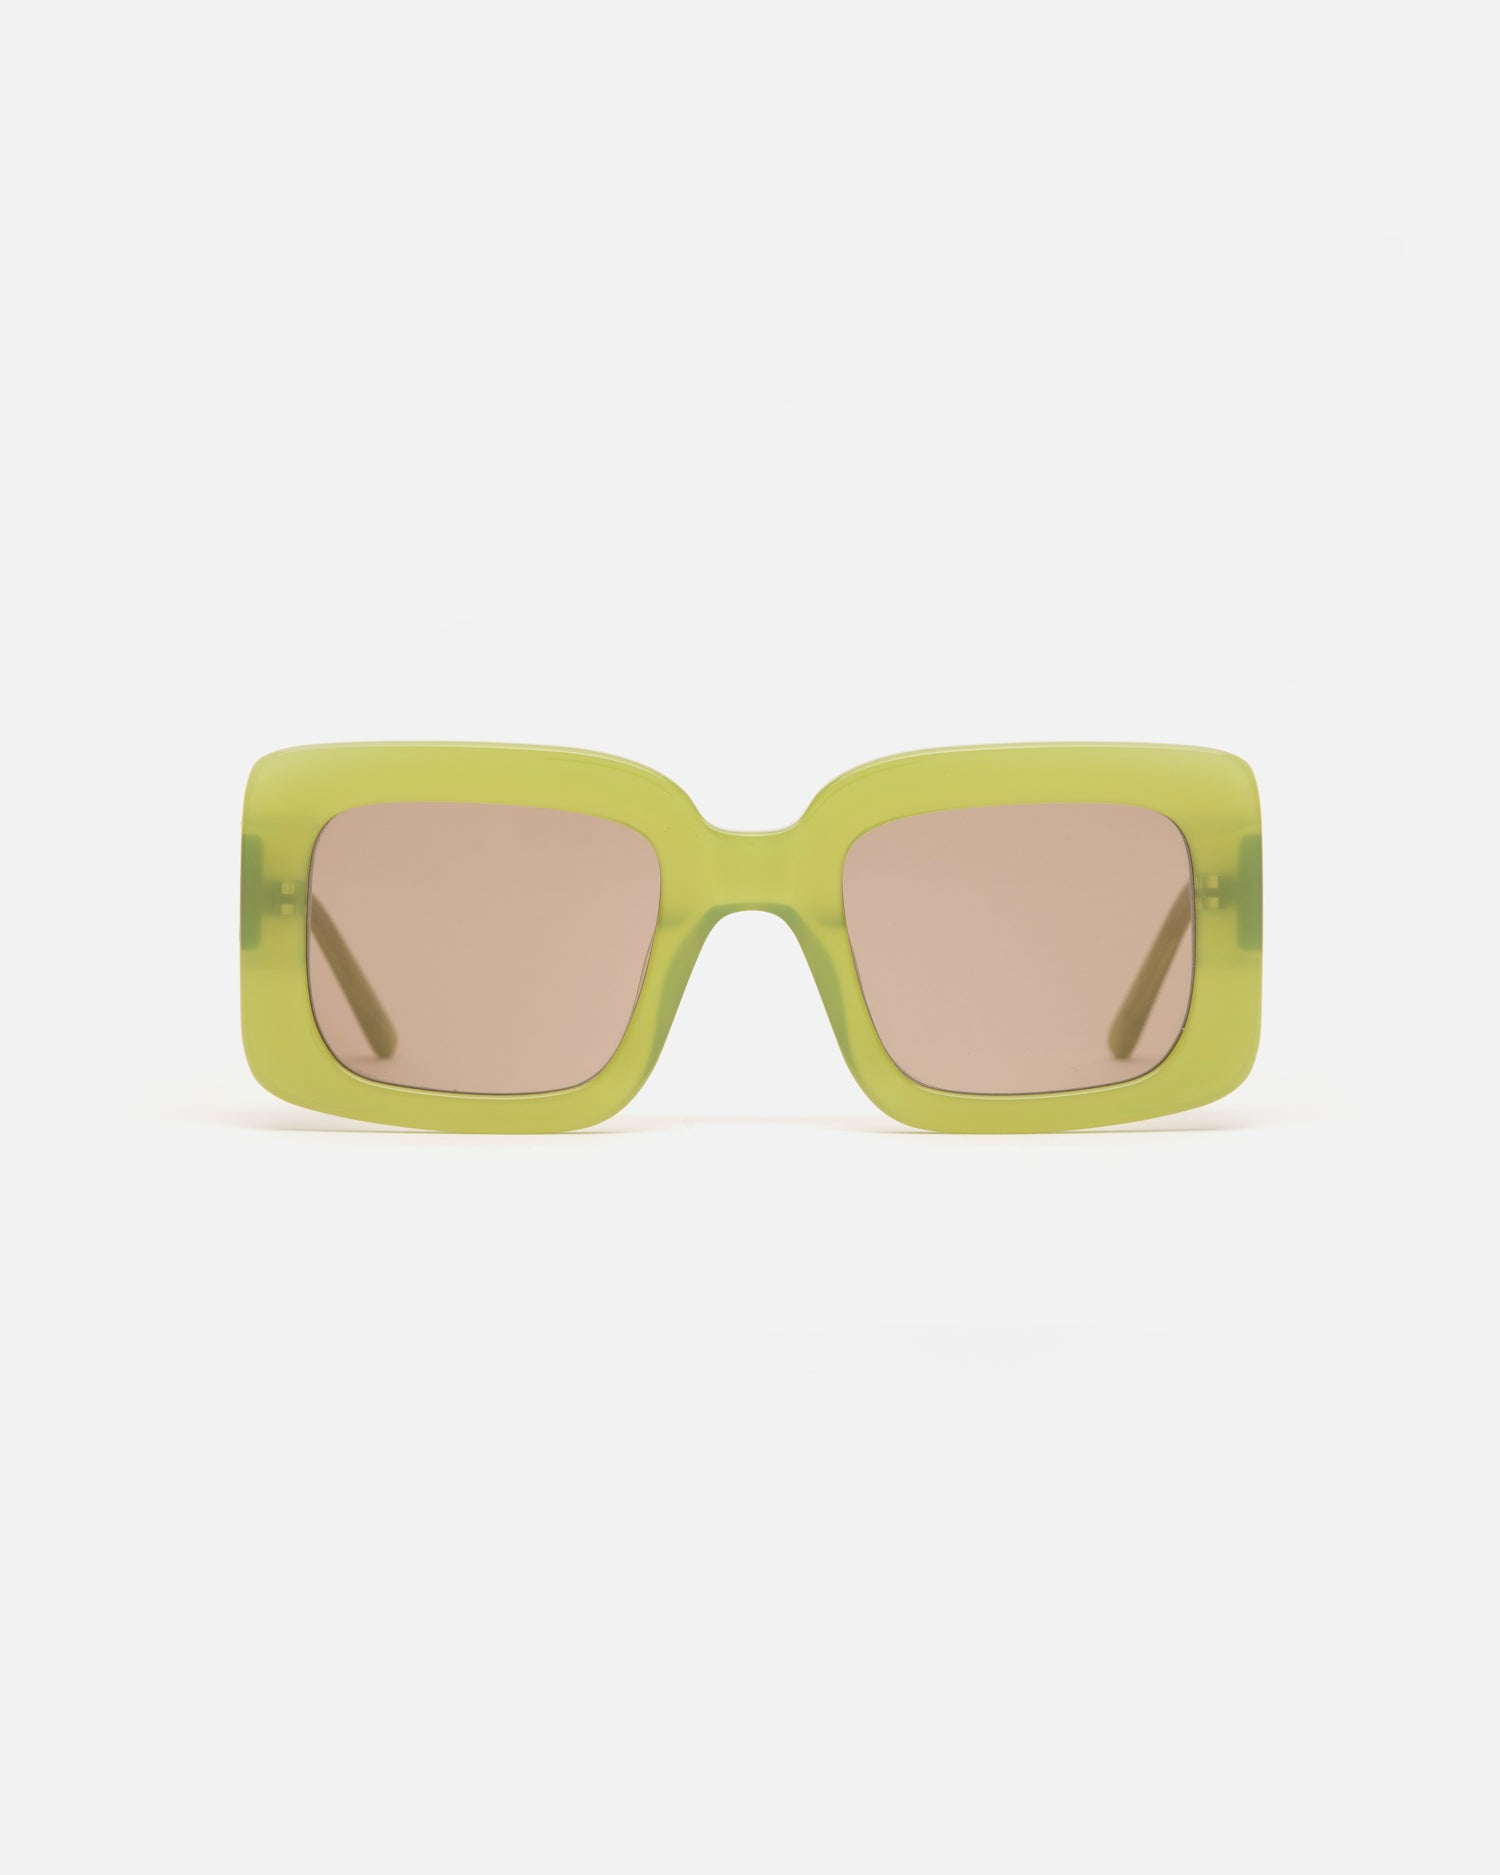 Lu Goldie Mia oversize square Sunglasses in leaf green acetate with tan brown lenses, front image